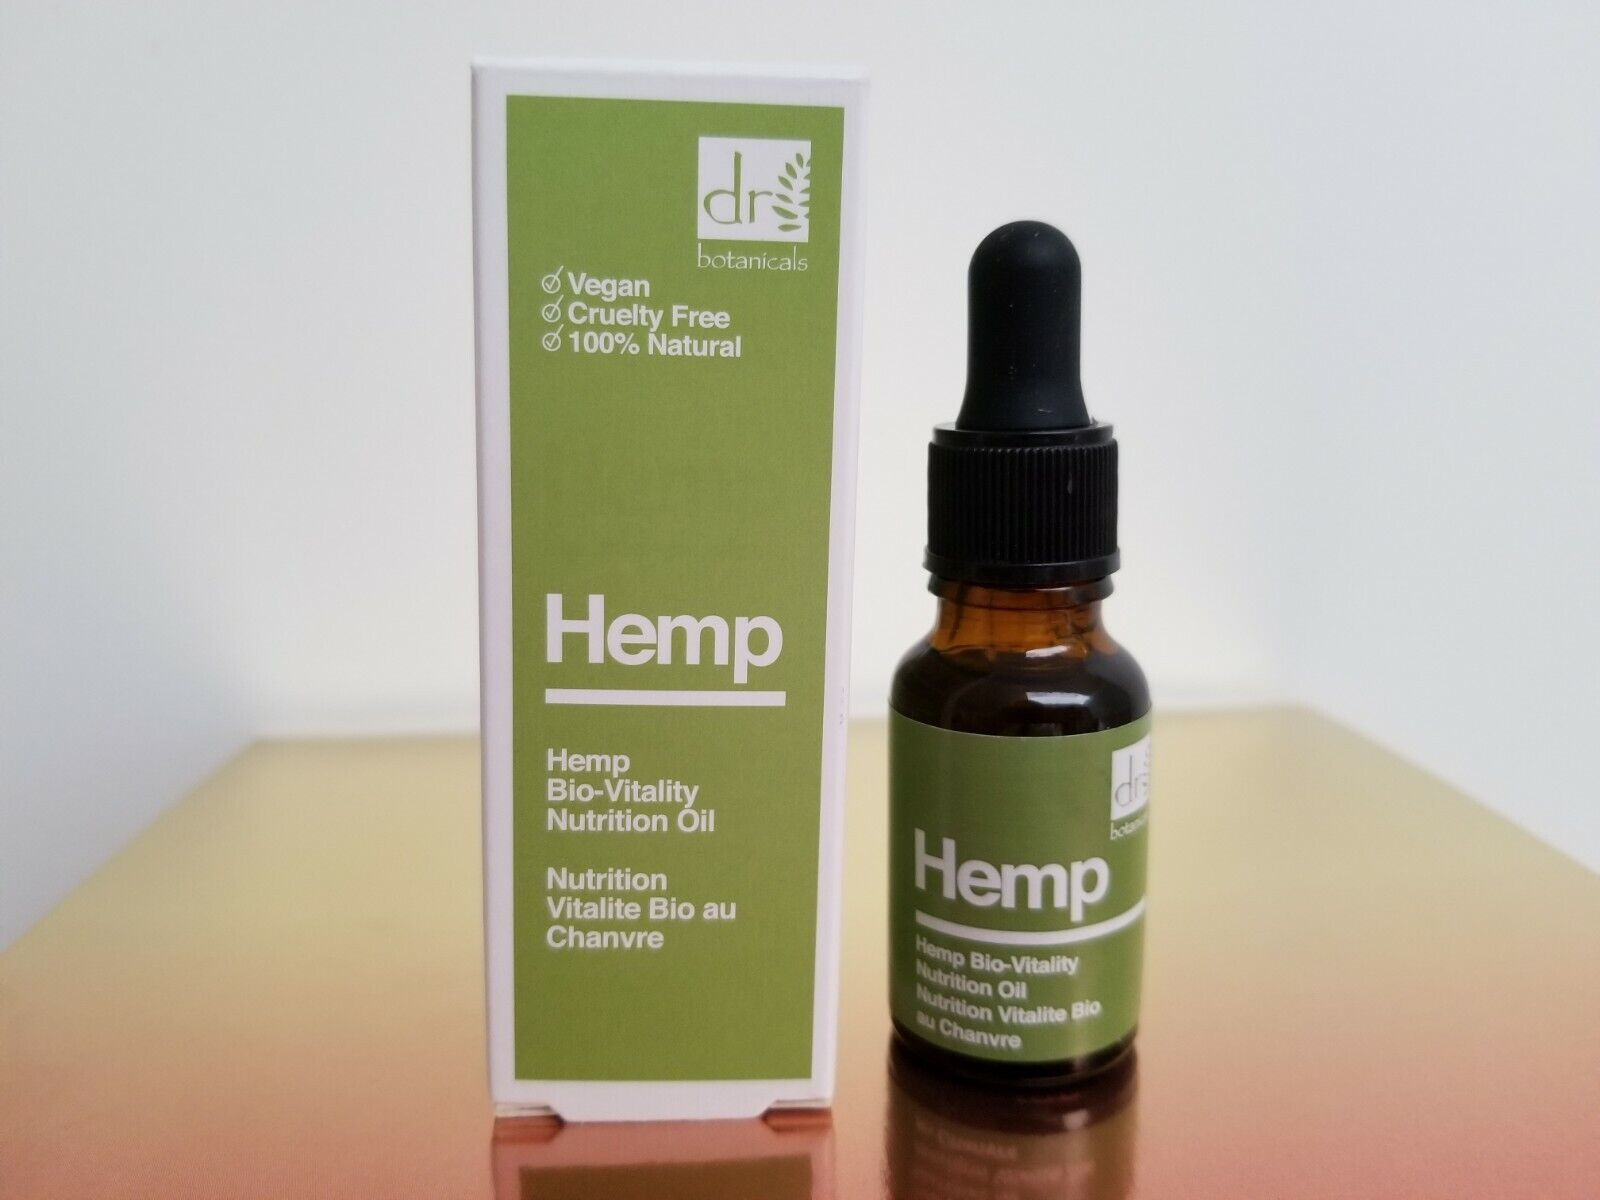 Dr Botanicals Hemp Bio-Vitality Nutrition Oil